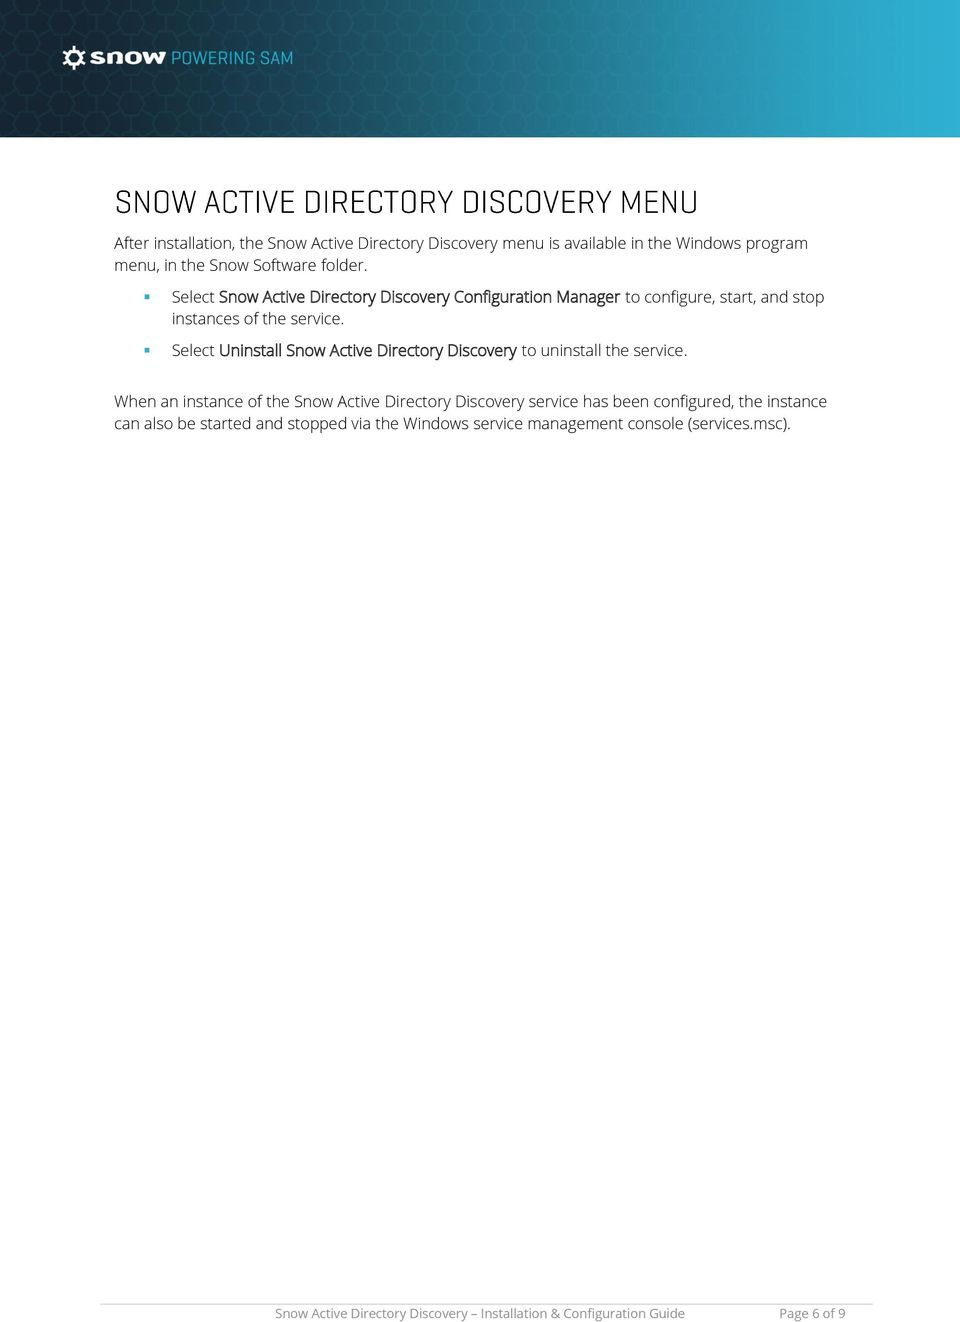 Select Uninstall Snow Active Directory Discovery to uninstall the service.